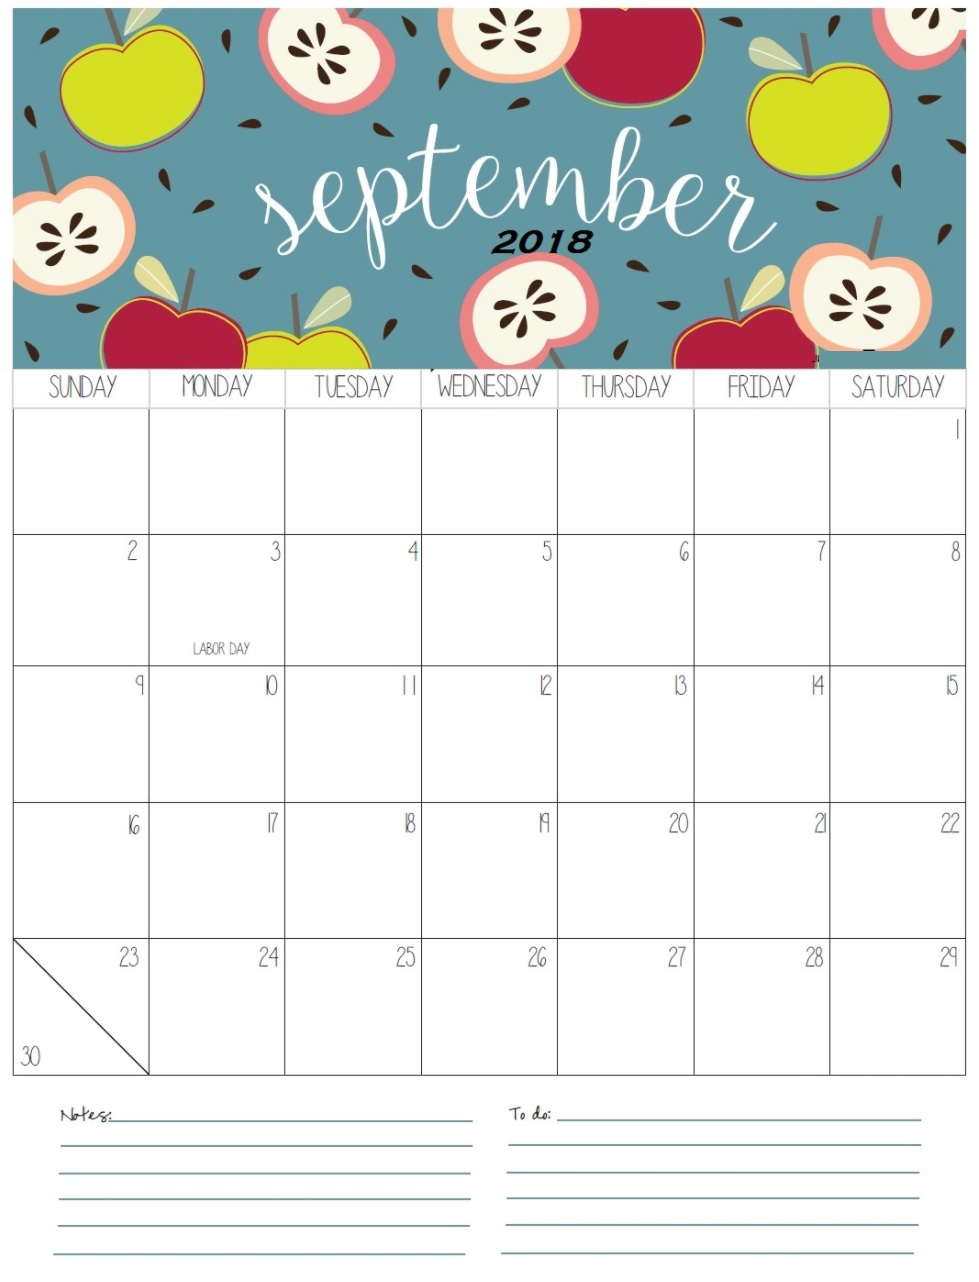 September 2018 Calendar With International Holidays